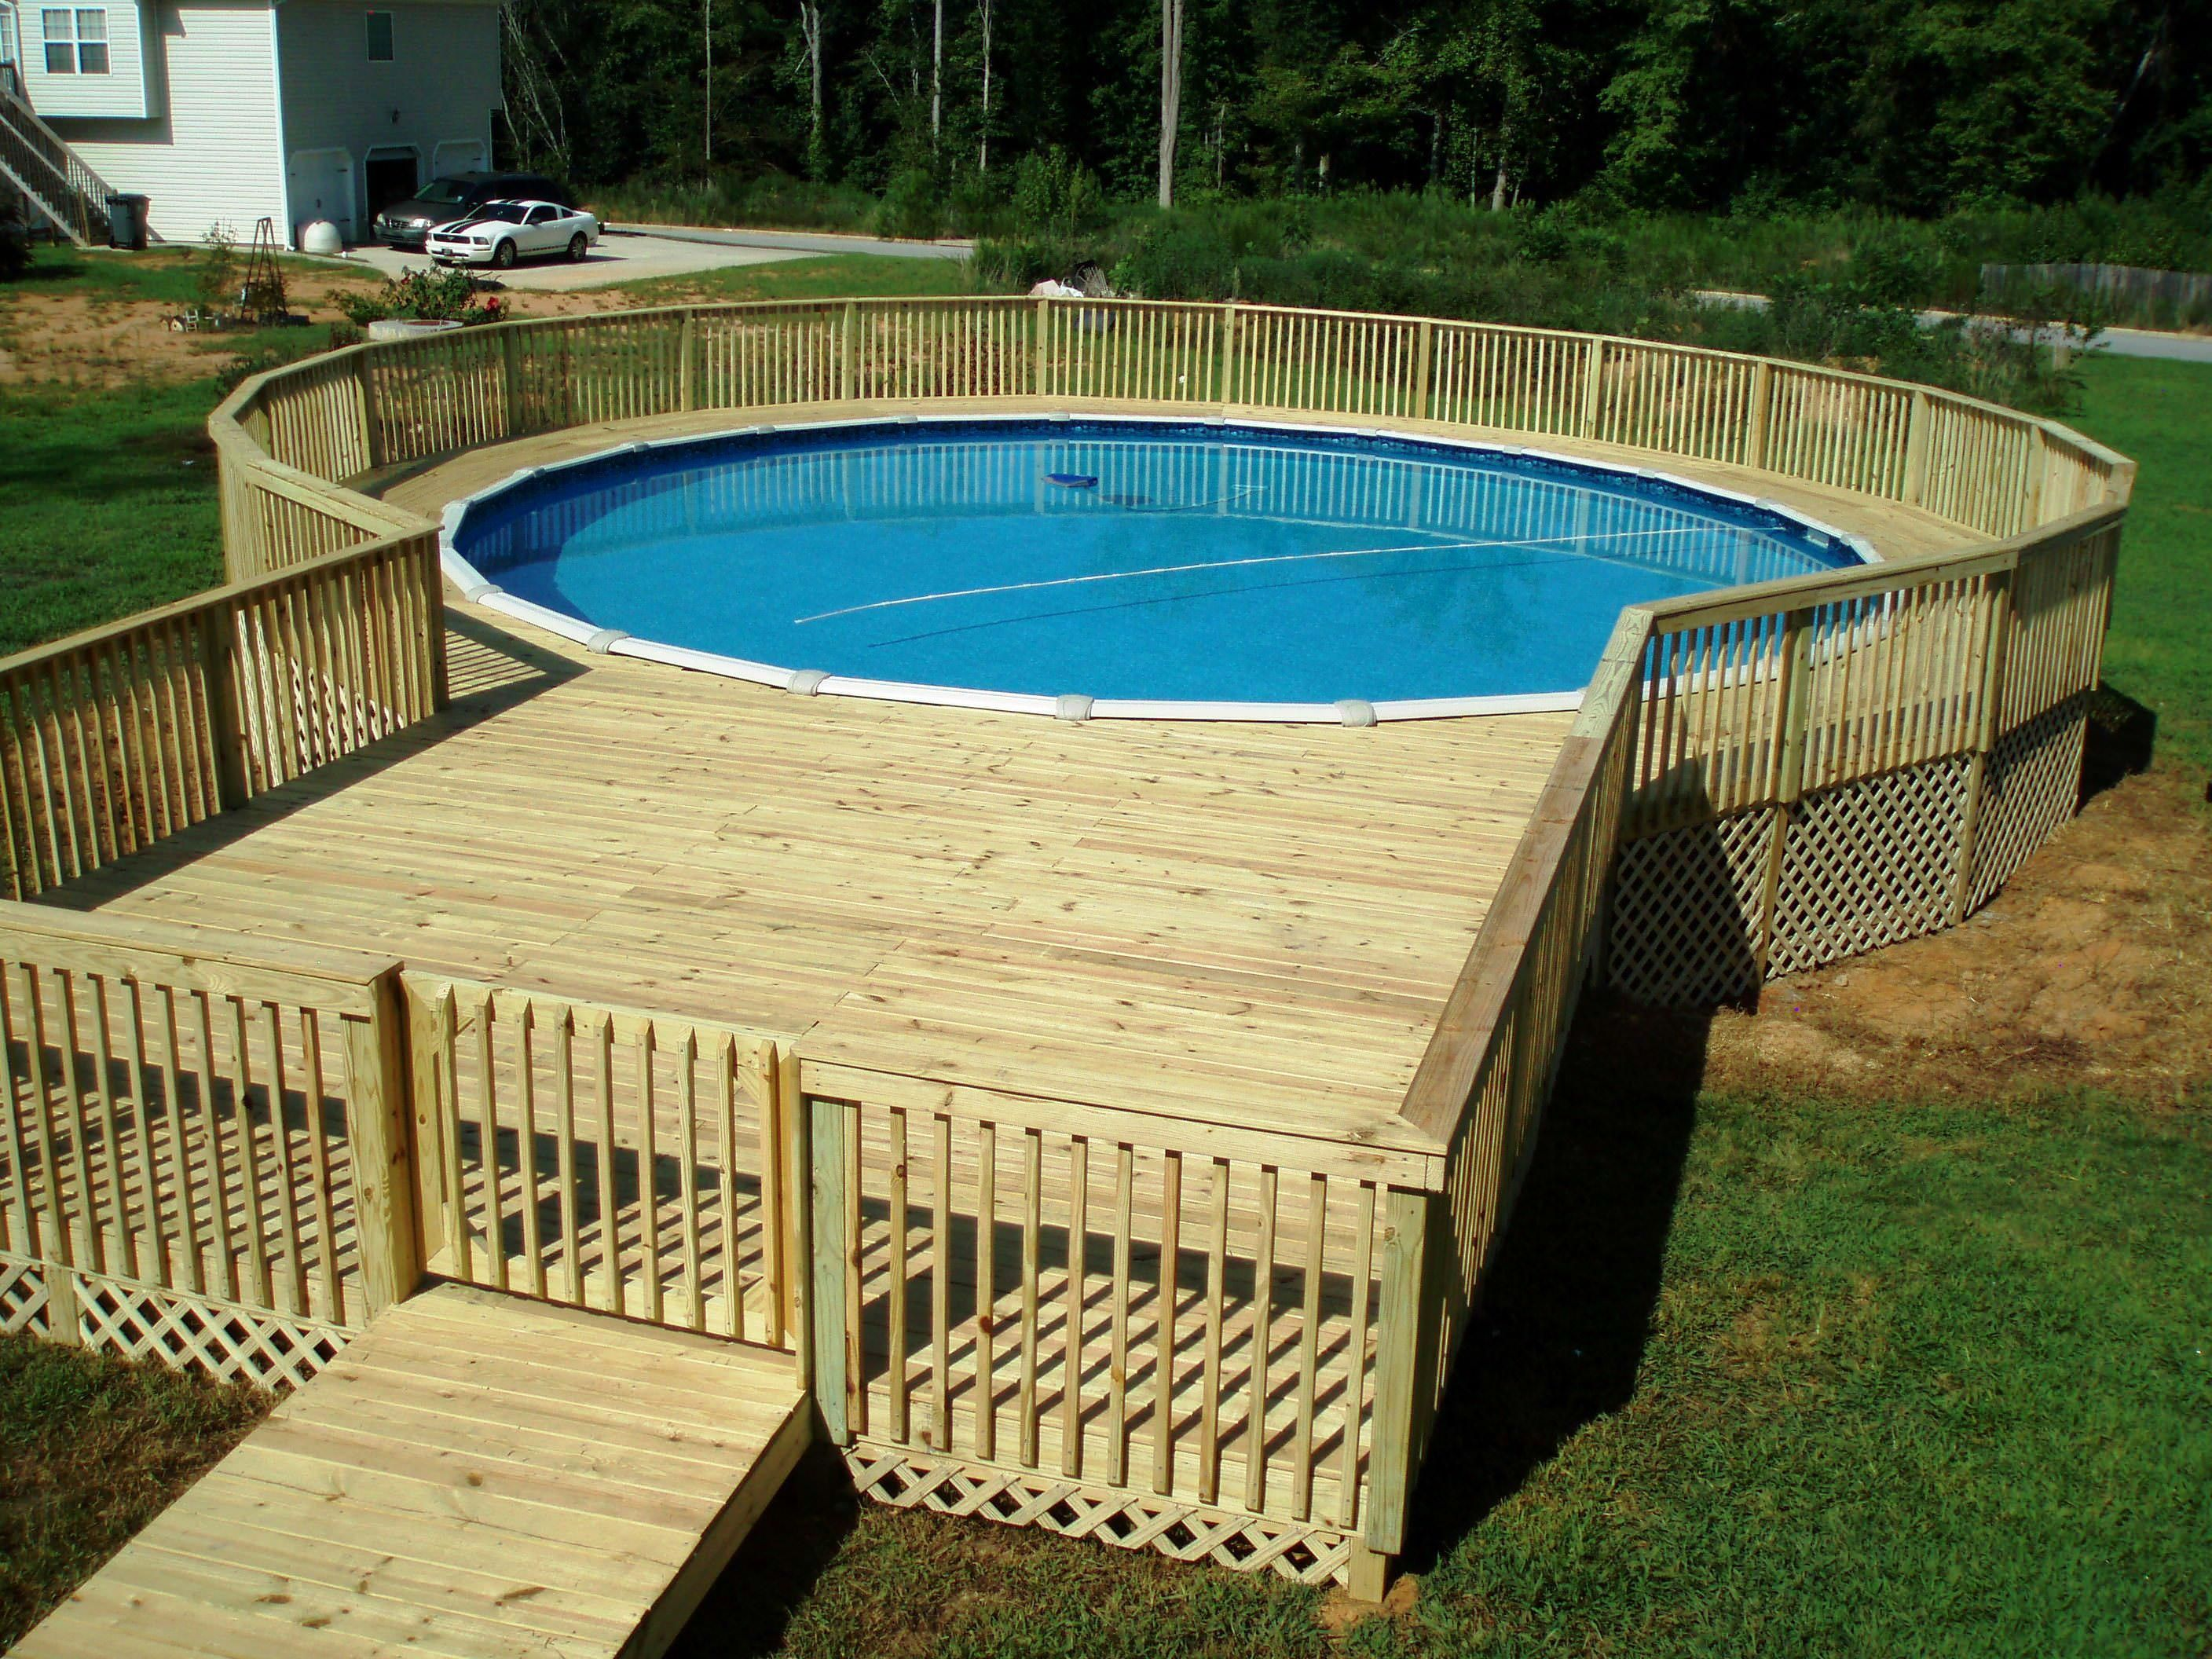 Fence Around Above Ground Pool Jpg 2816 2112 Pool Deck Plans Decks Around Pools Backyard Pool